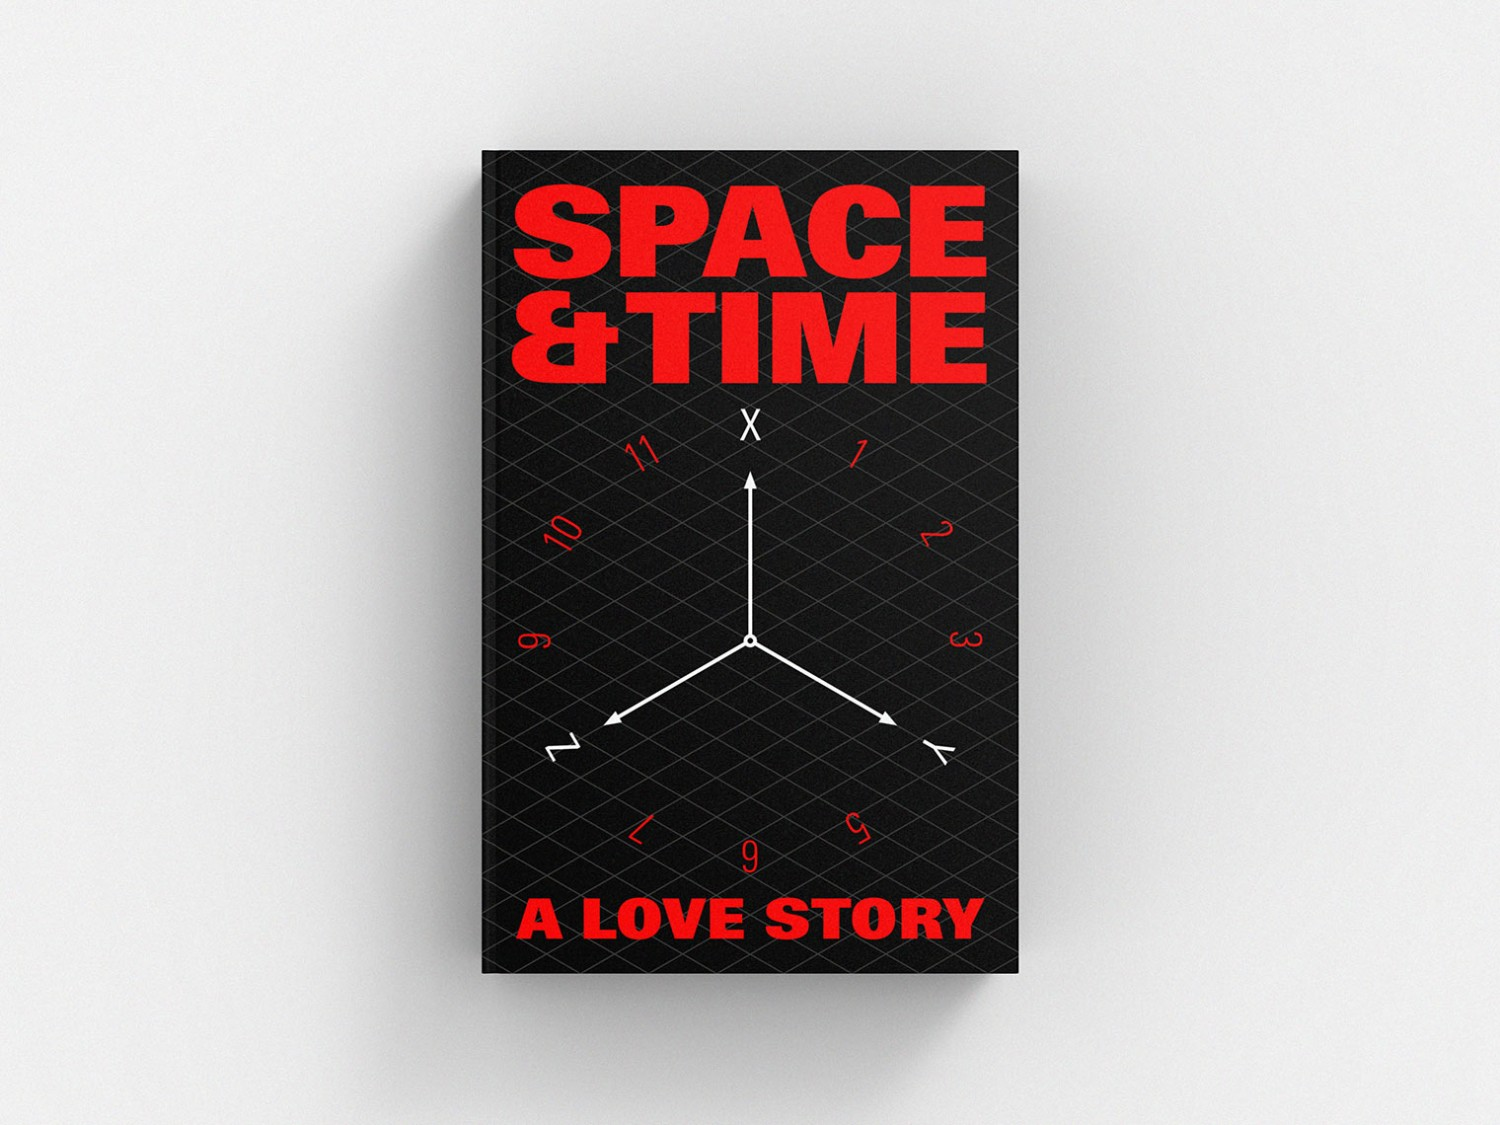 Space & Time: A Love Story